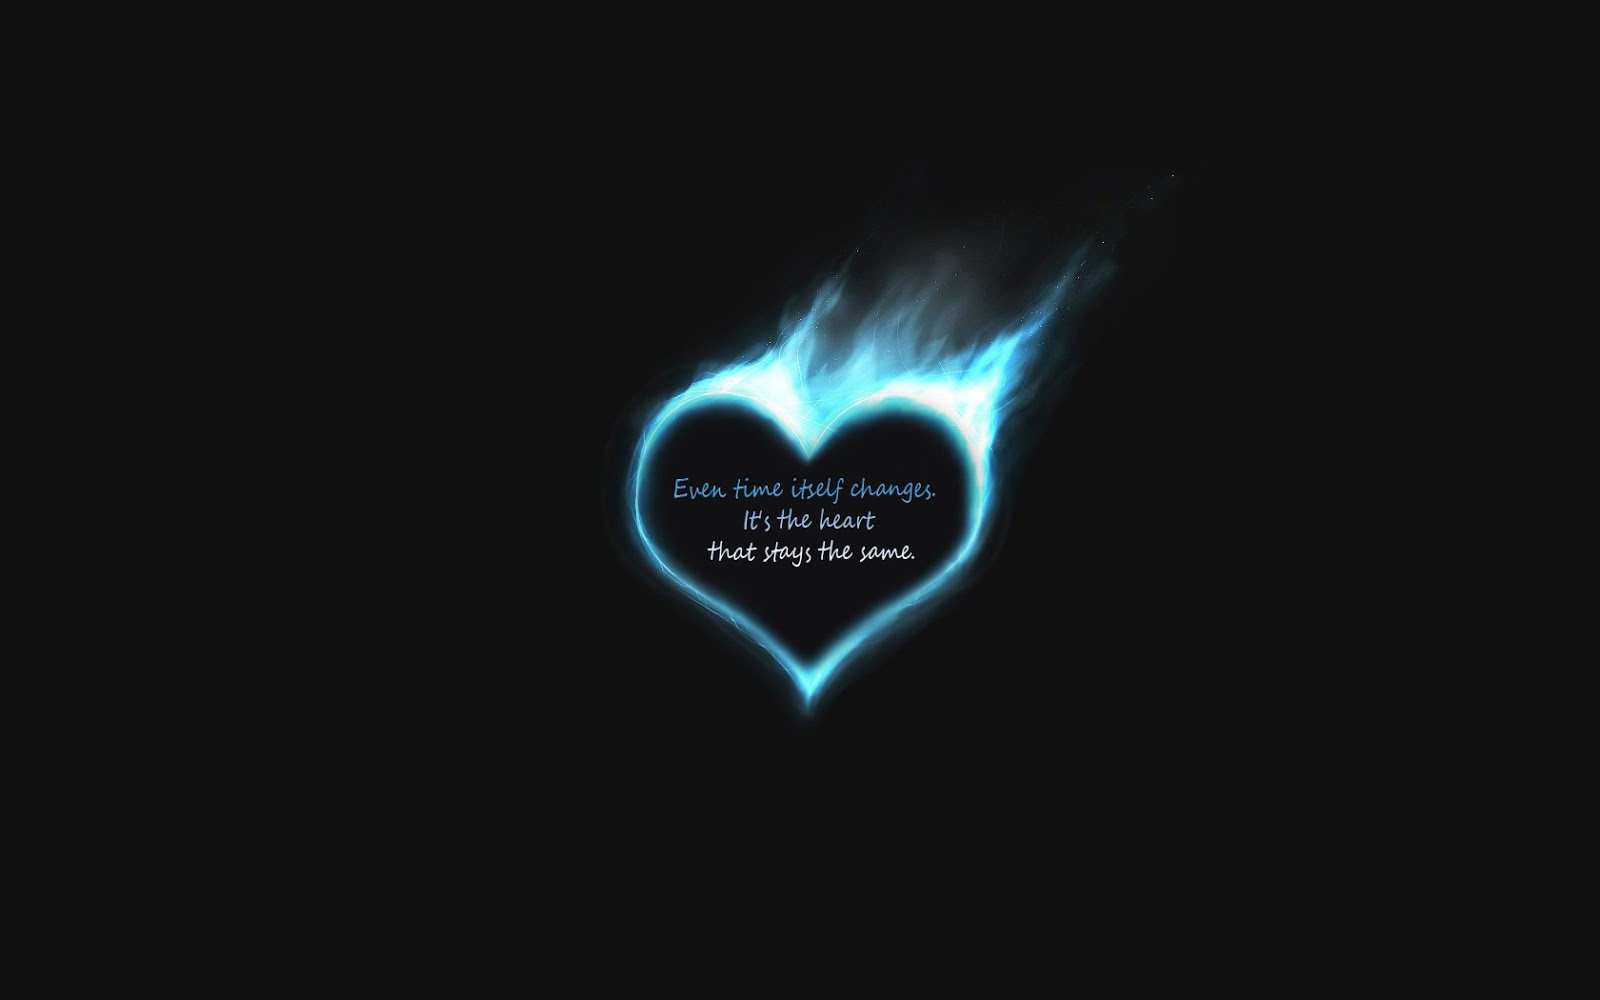 Quote in a heart on a black background